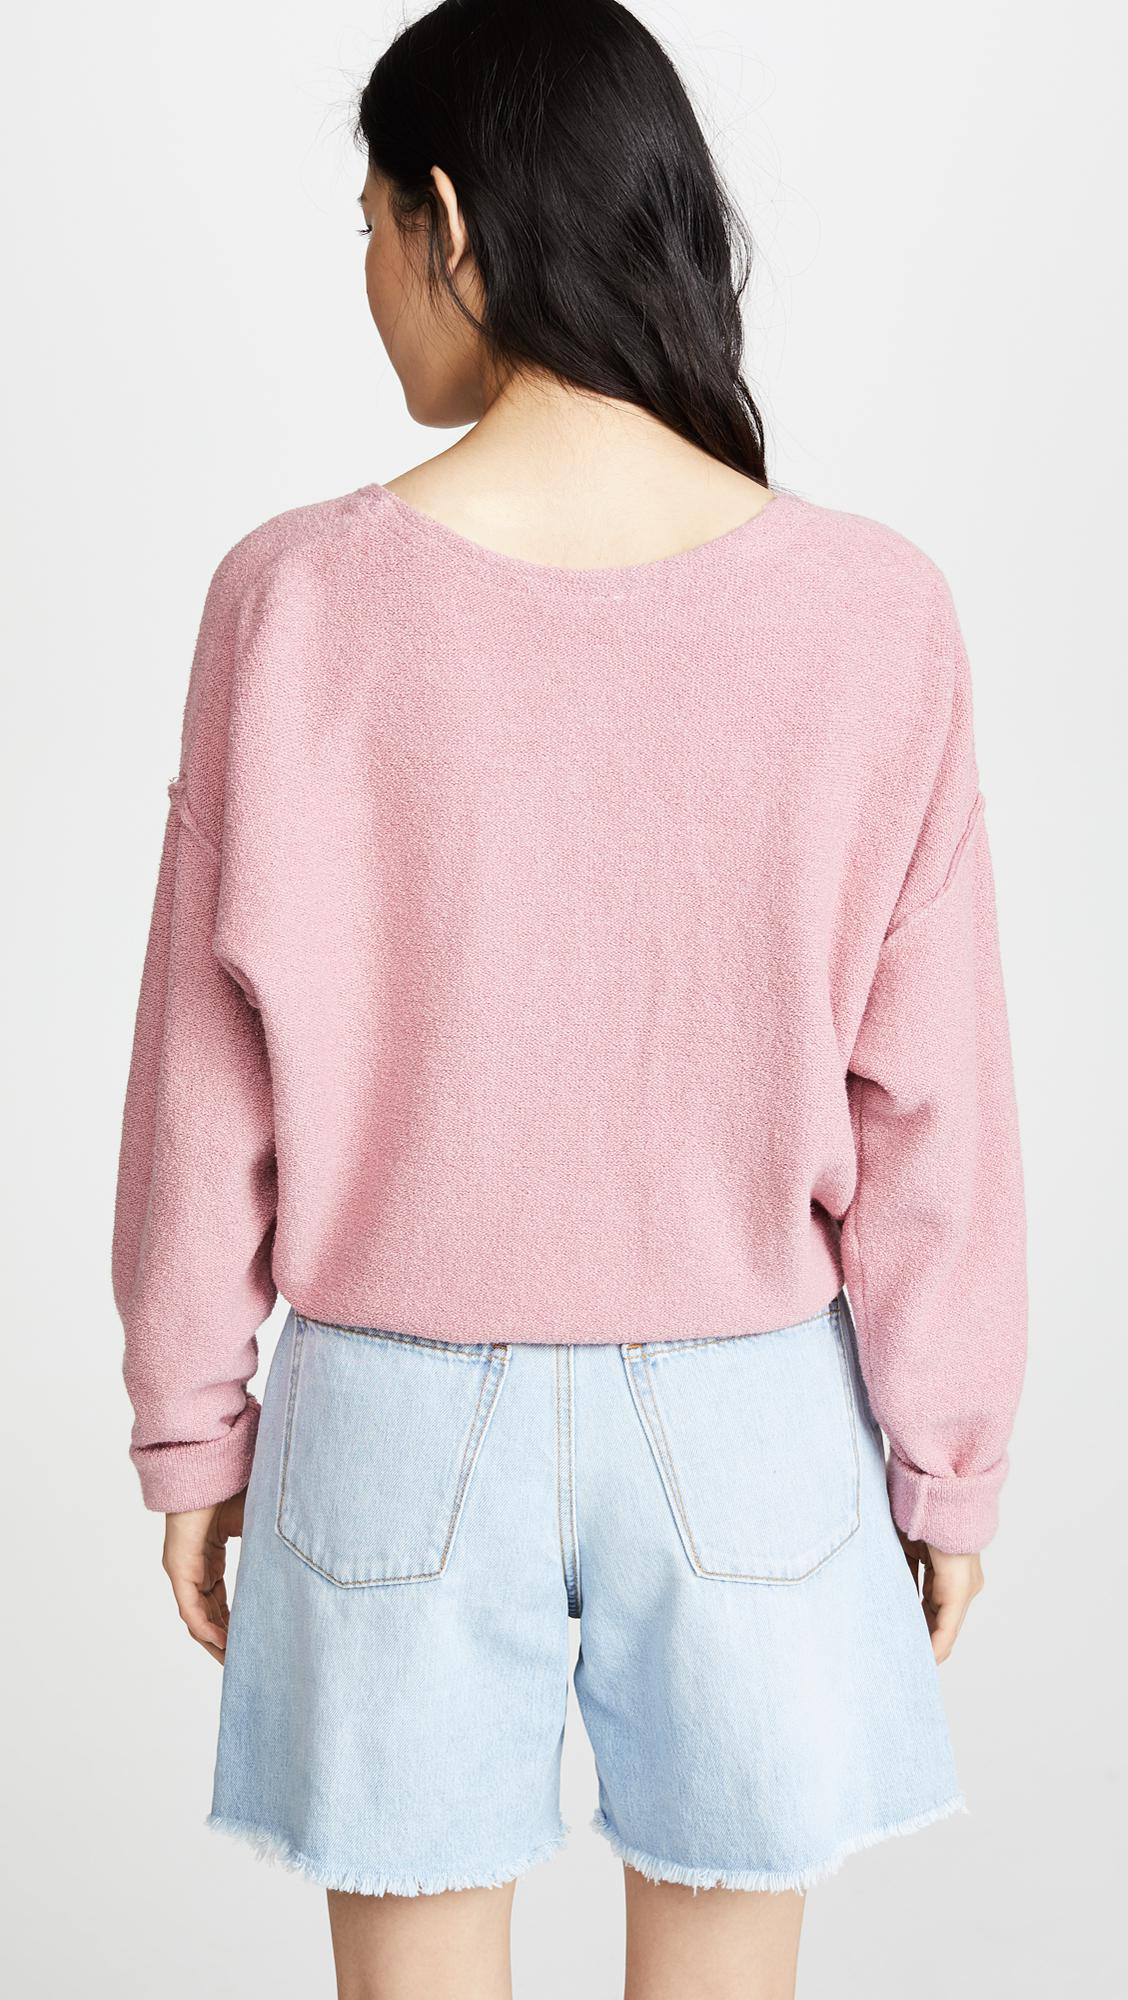 Free People Cotton Take Me Places Pullover in Pink